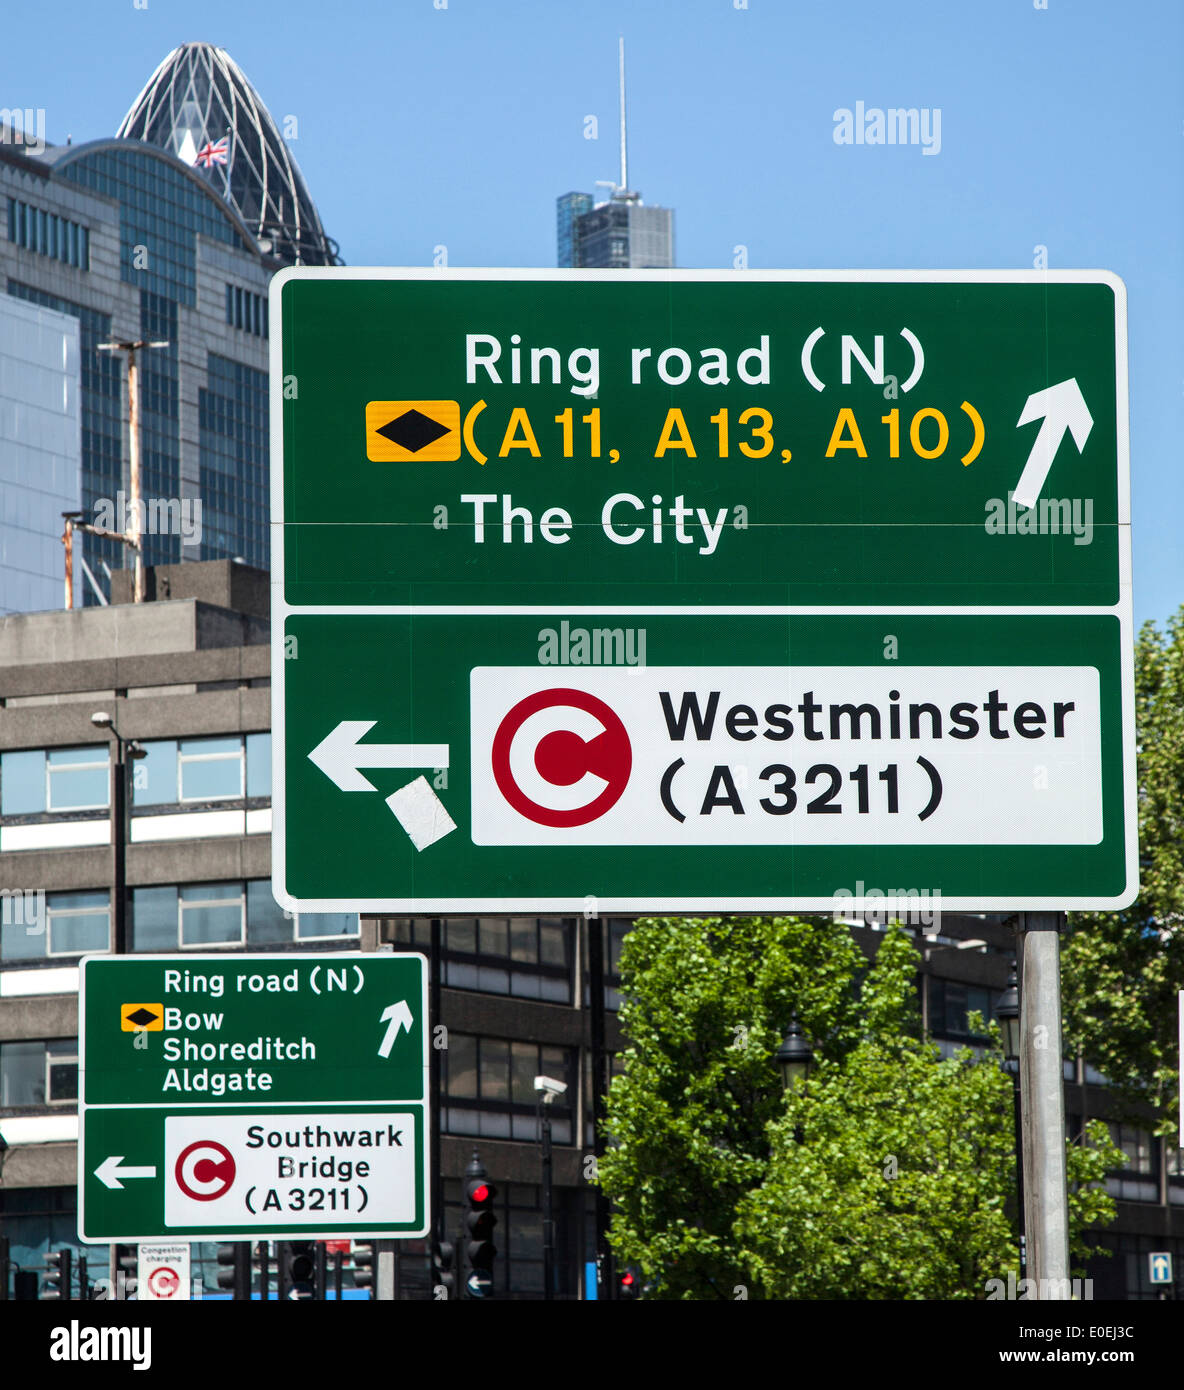 Congestion Zone Road Charging sign - Stock Image